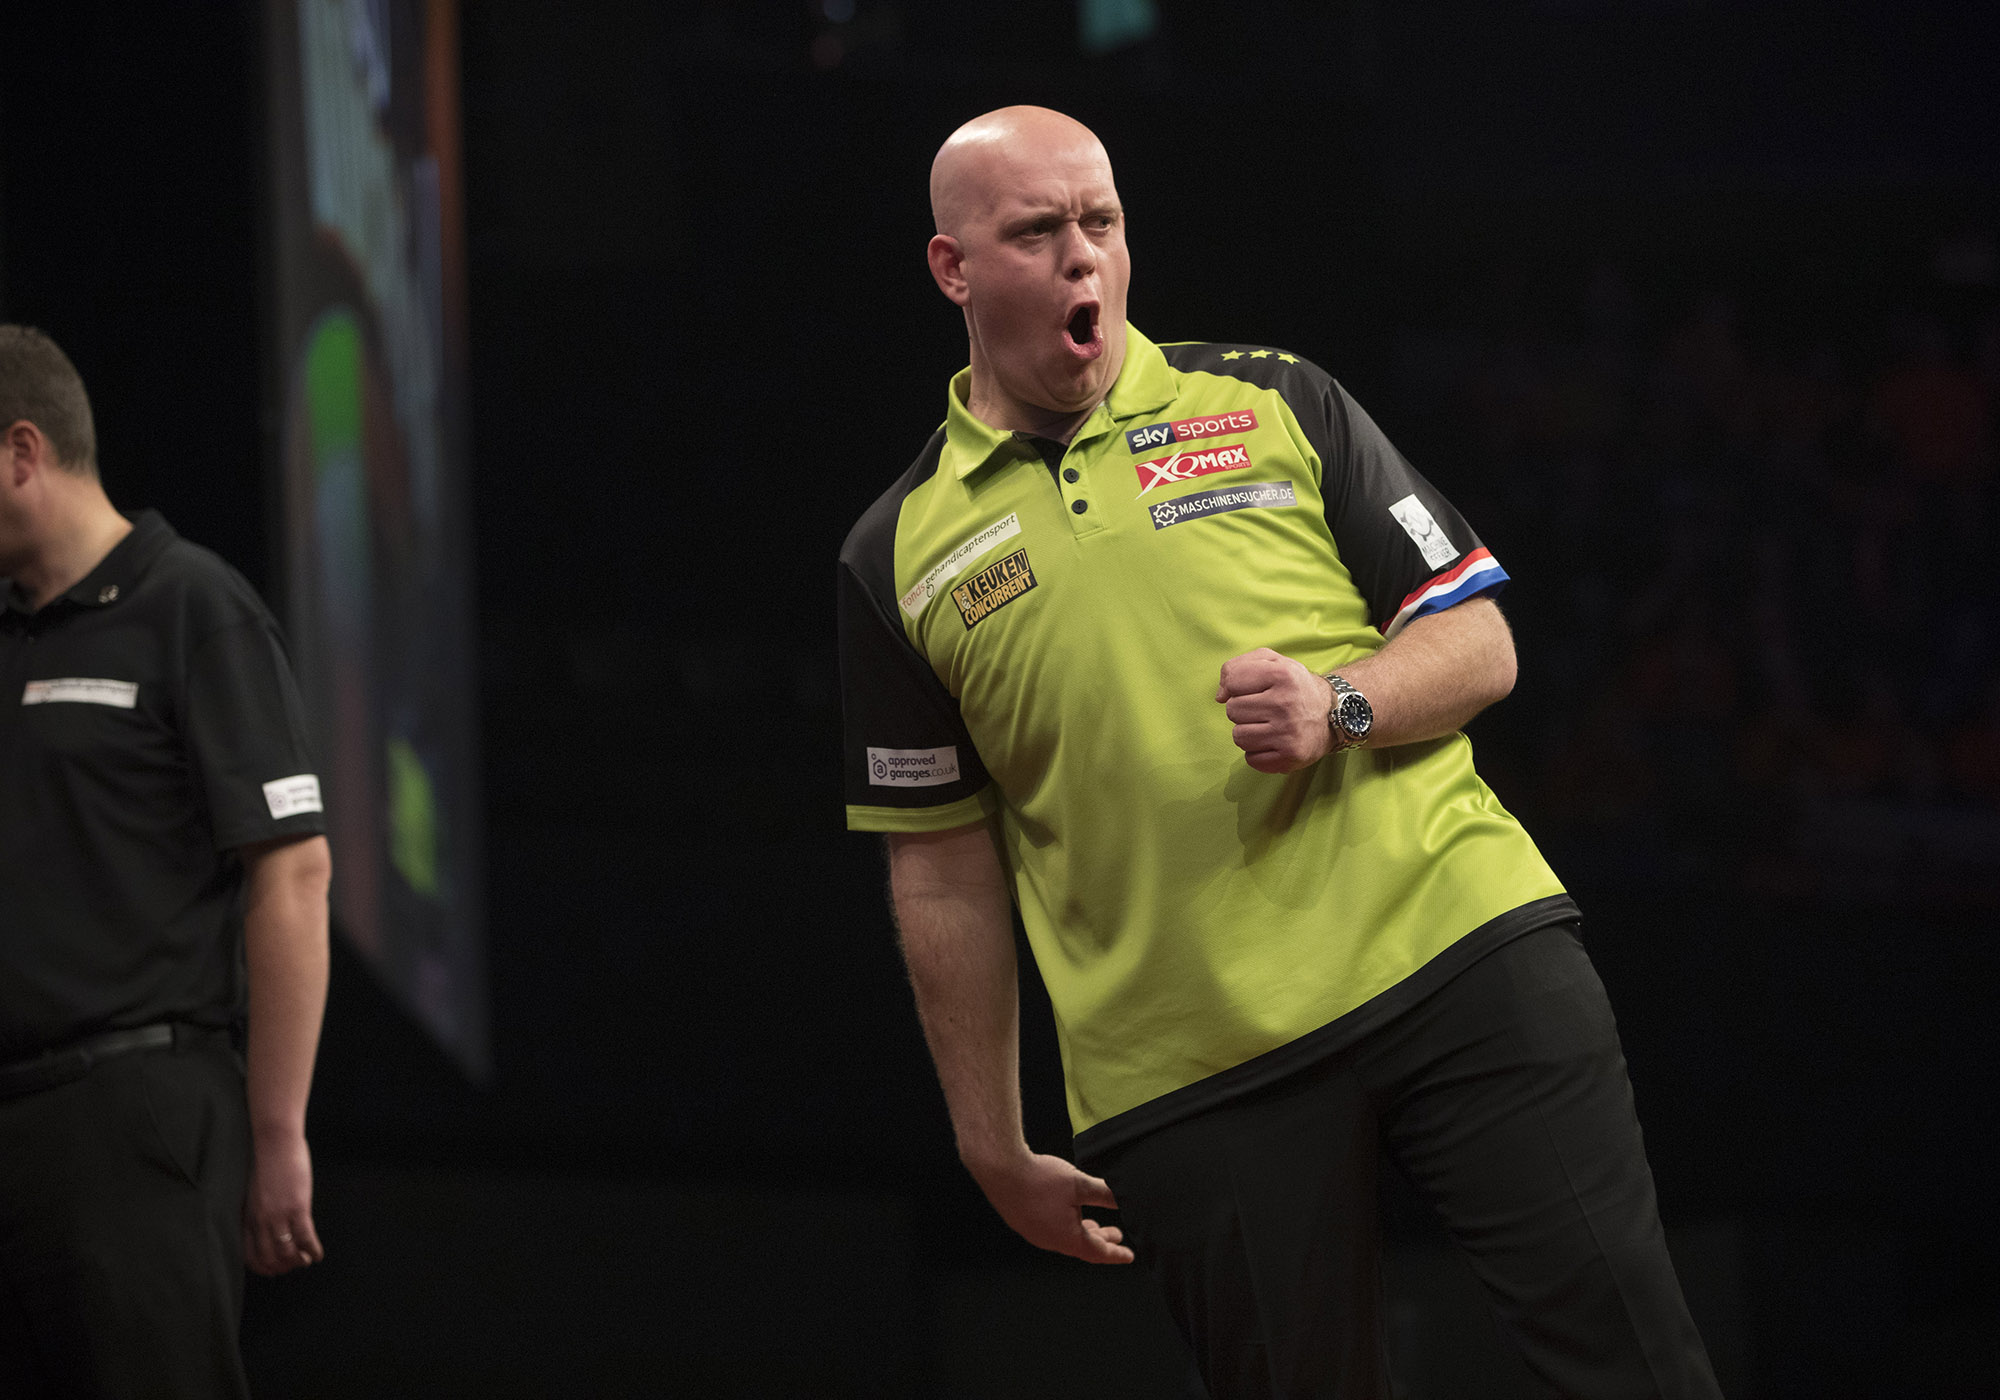 Premier League Darts Rotterdam results, fixtures, odds and TV channel